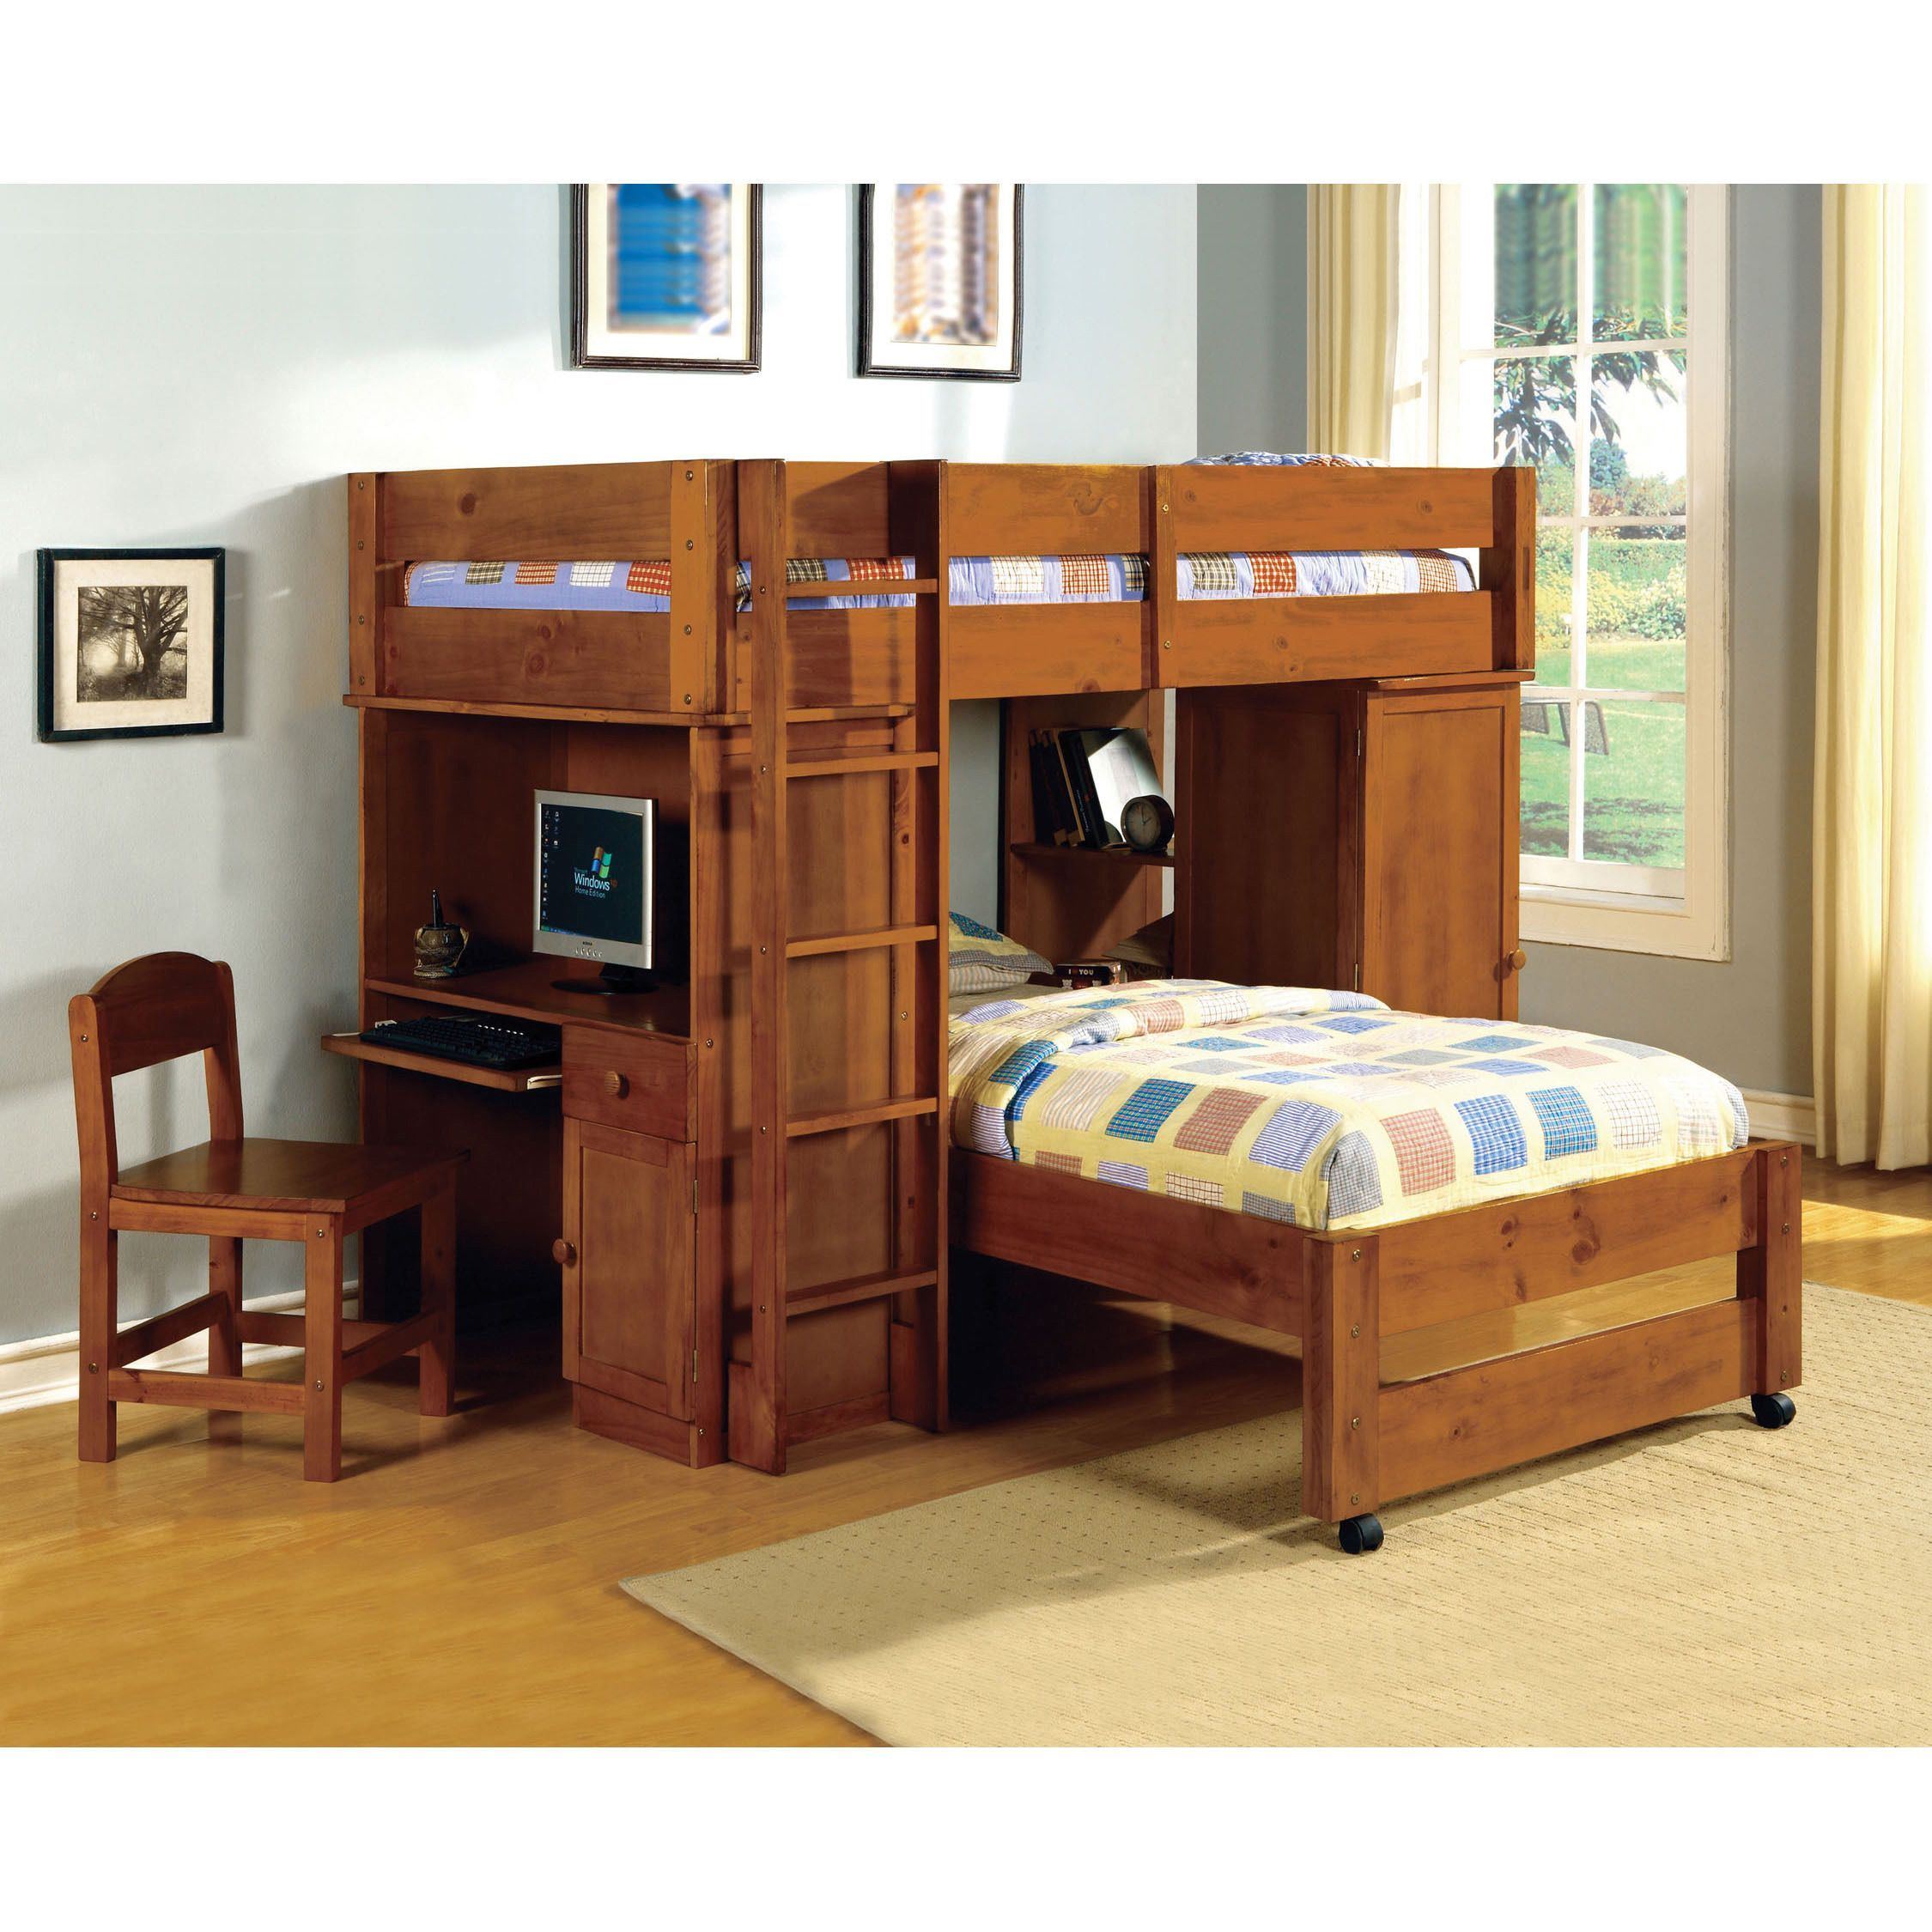 Double loft bed with desk  Make the most of your childrenus bedroom floor space with this all